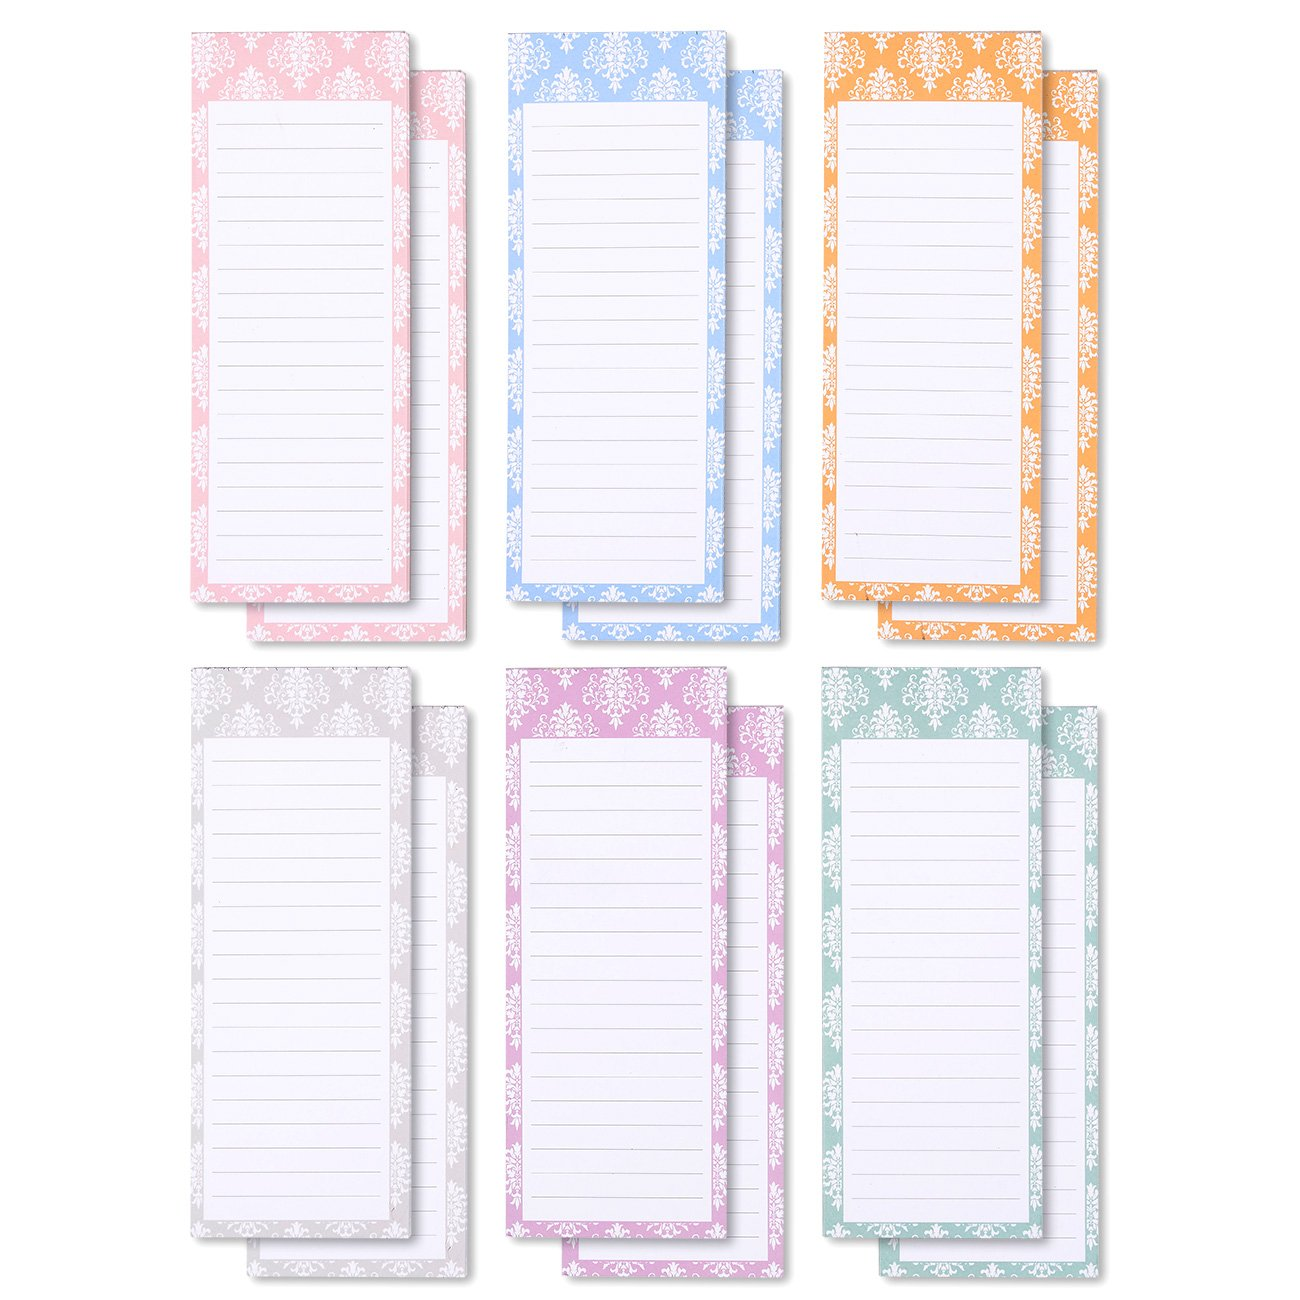 Juvale to-do-List Notepad - 12-Pack Magnetic Notepads, Grocery List Magnet Memo Pad for Shopping, to Do List, Reminders, House Chores, 6 Colors and Designs, 60 Sheets Per Pad, 3.5 x 9 Inches